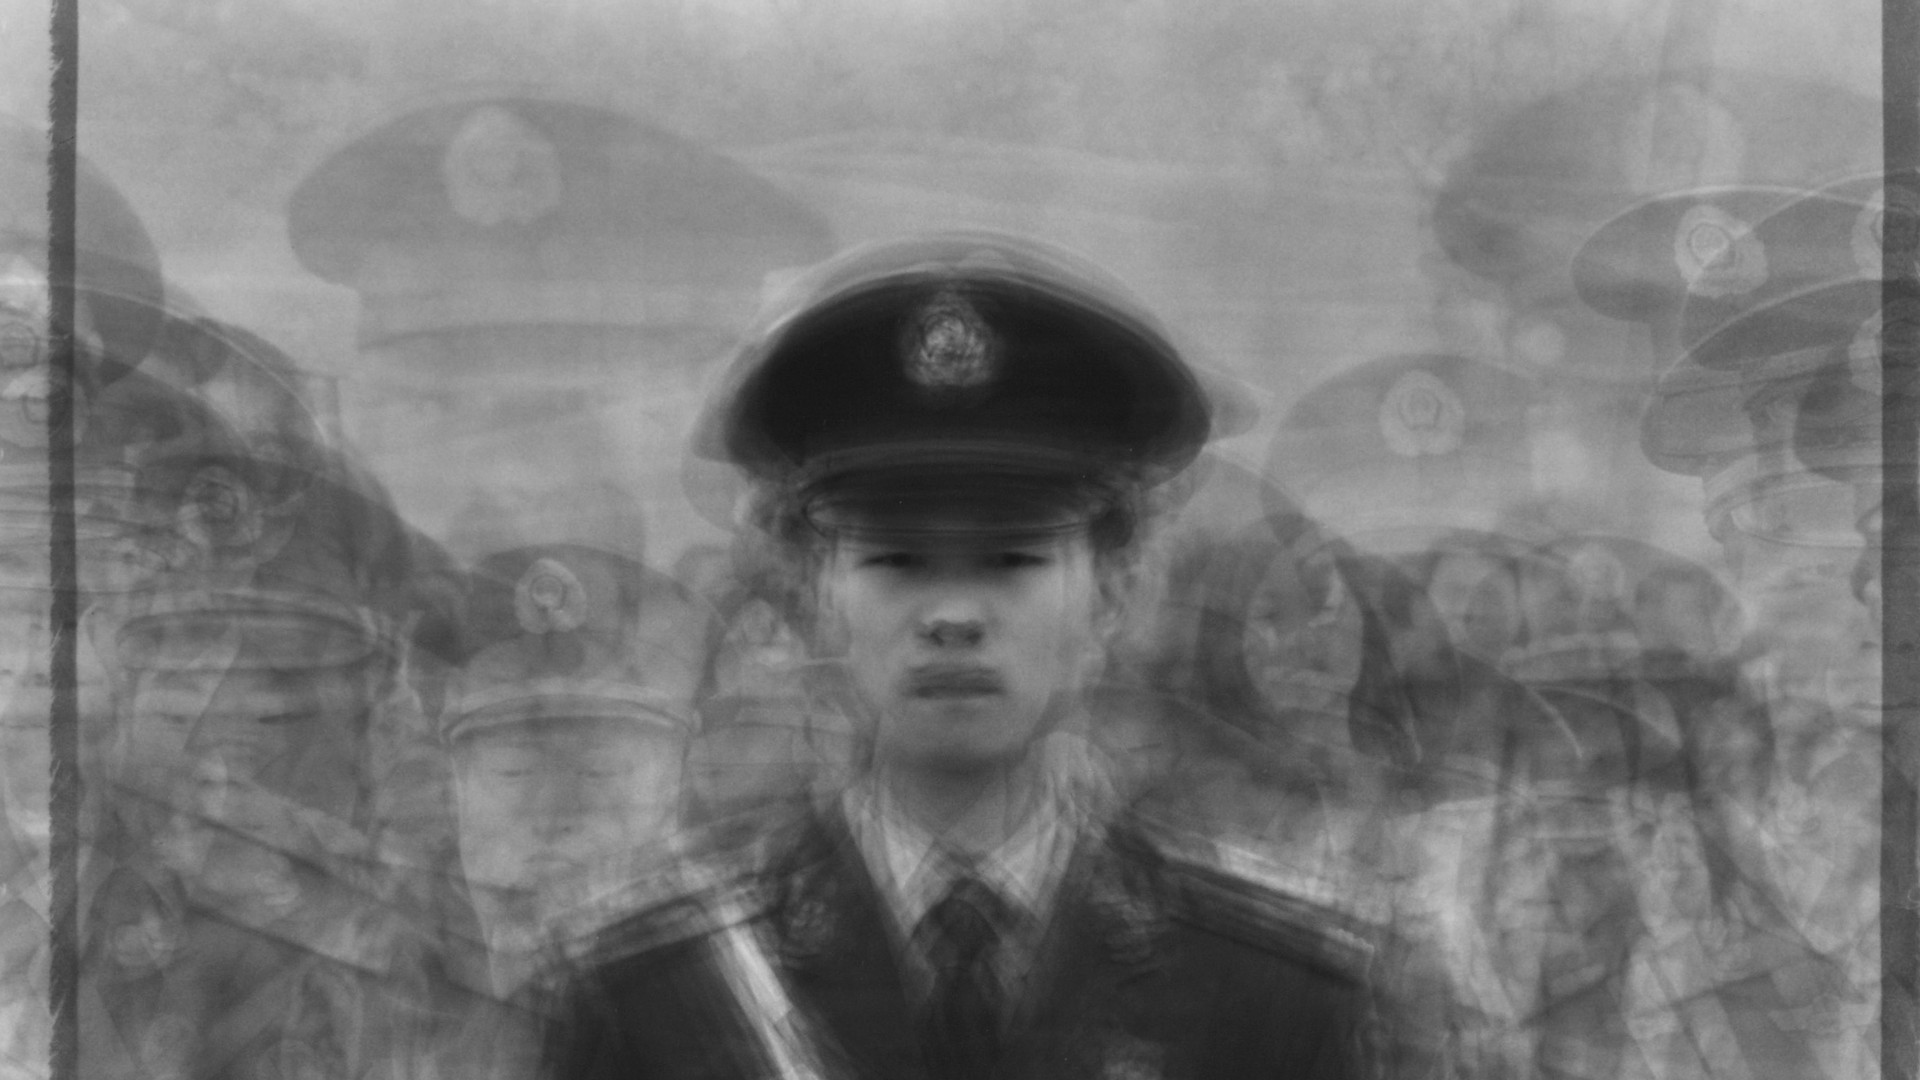 Ken Kitano, 24 army soldiers standing guard over Tian'anmen Square, May 2, 2009, Tian'anmen Square Beijing, China